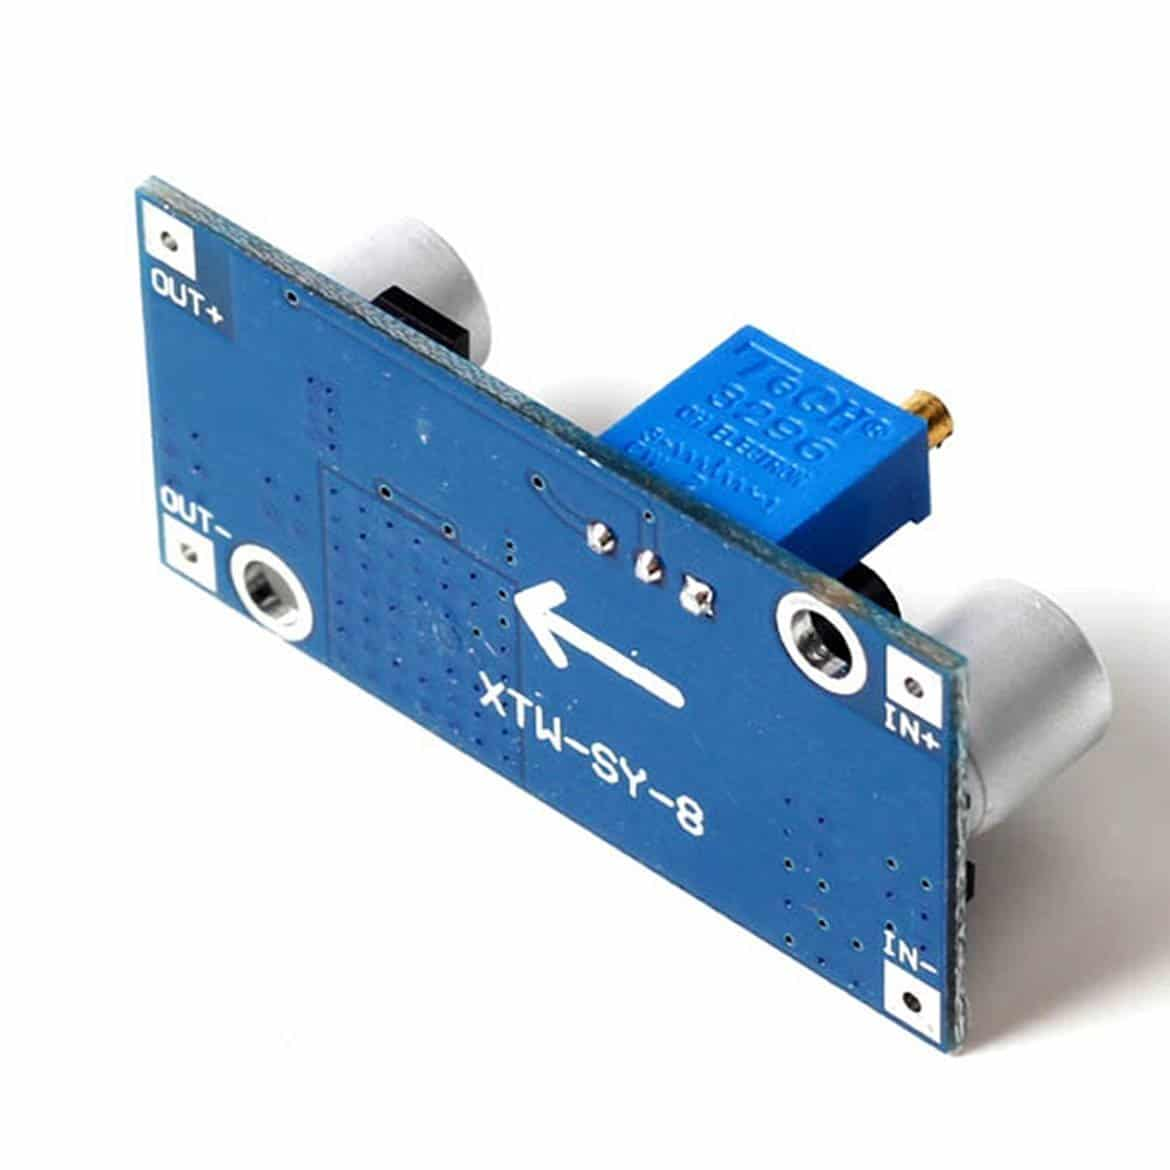 XL6009 DC-DC Step-up Module with Adjustable Booster Power Supply Module